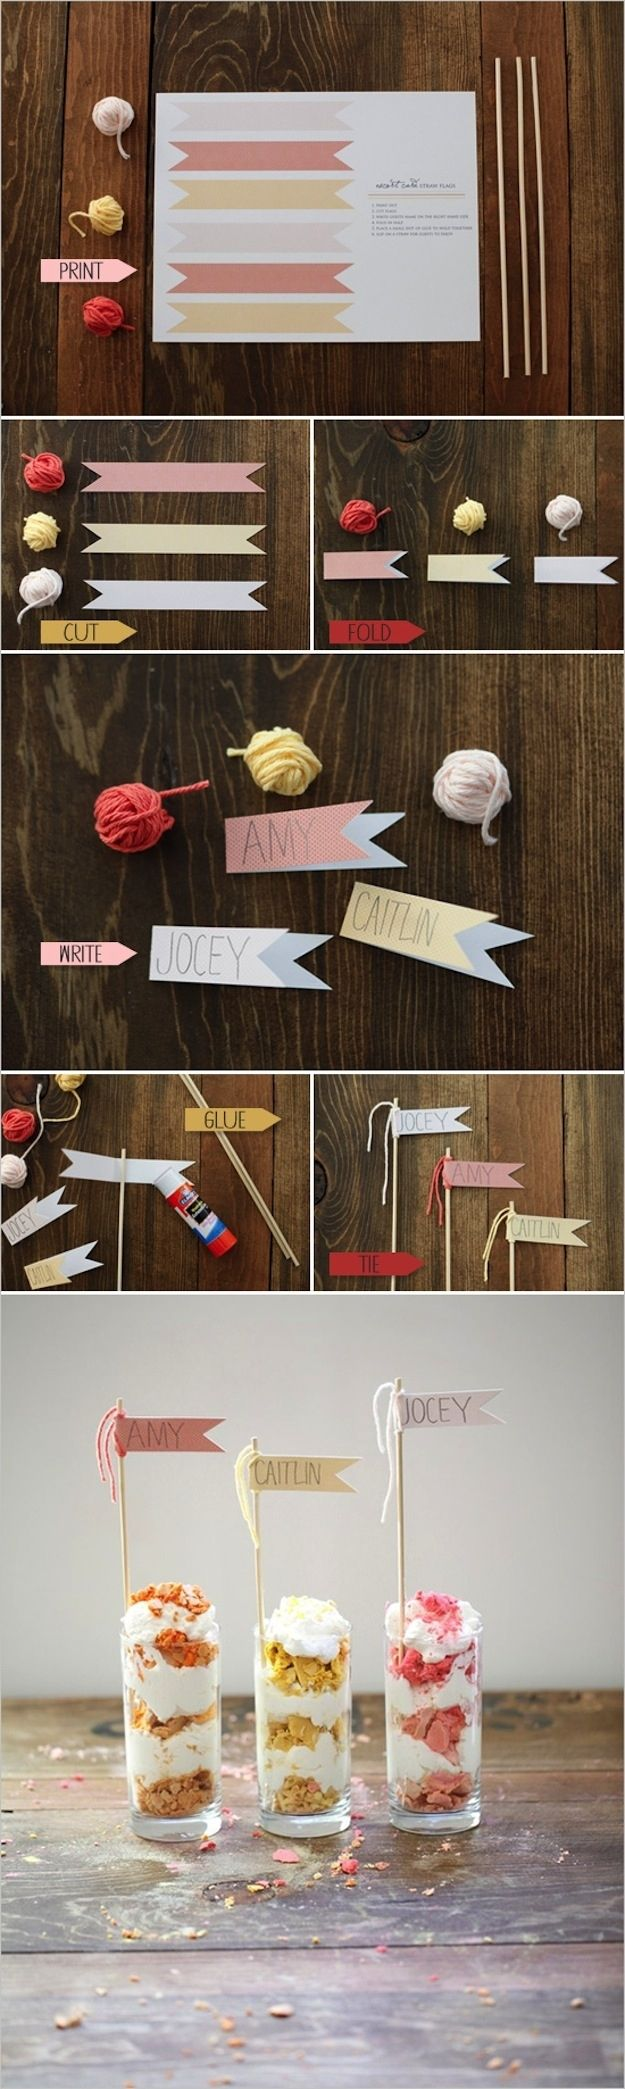 Straw Flag Place Cards | 35 Cute And Clever Ideas For PlaceCards